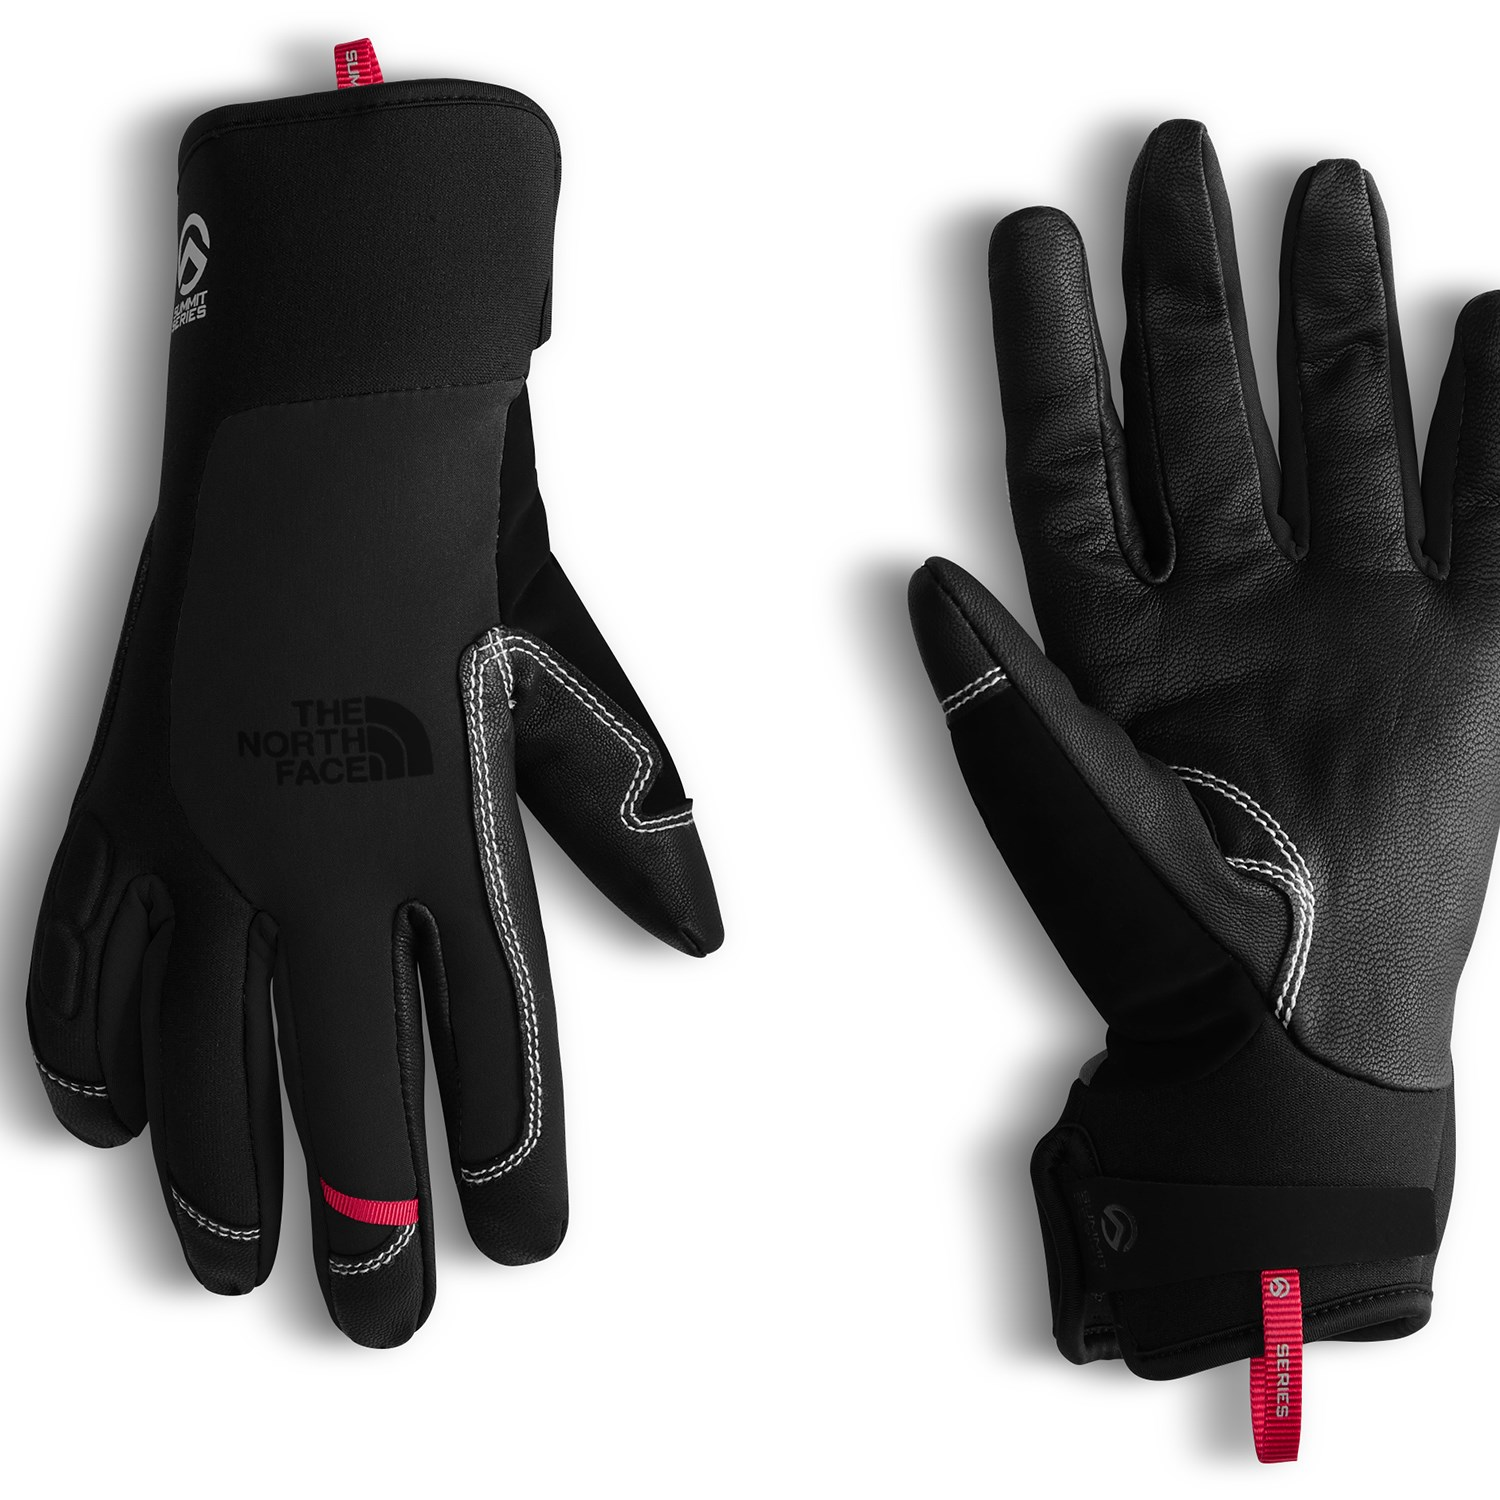 ebe400b614e7c4 The North Face Summit G4 Softshell Gloves